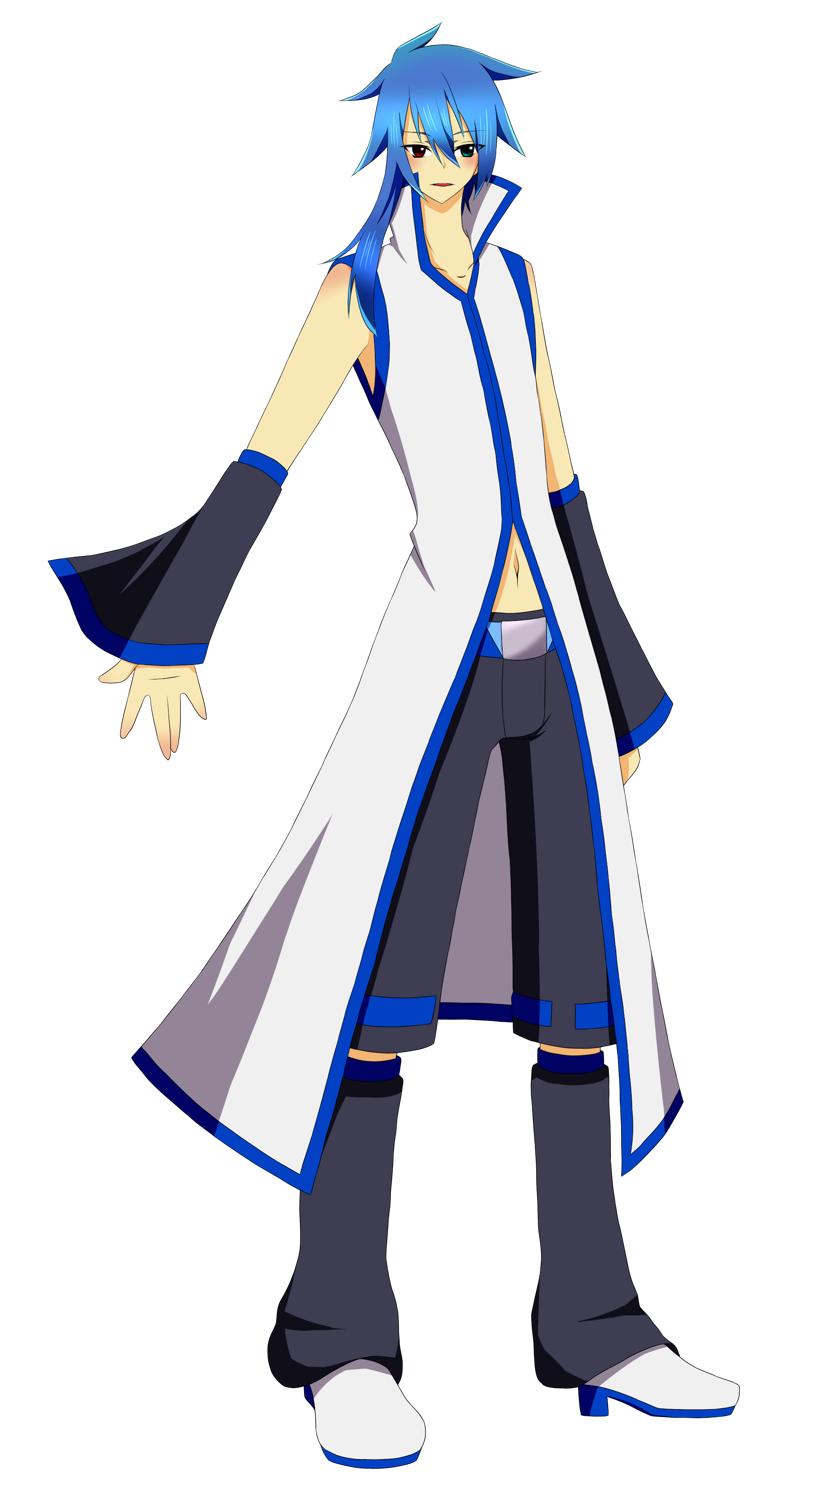 Whisper clipart low voice. Lugh mizunone utau wiki